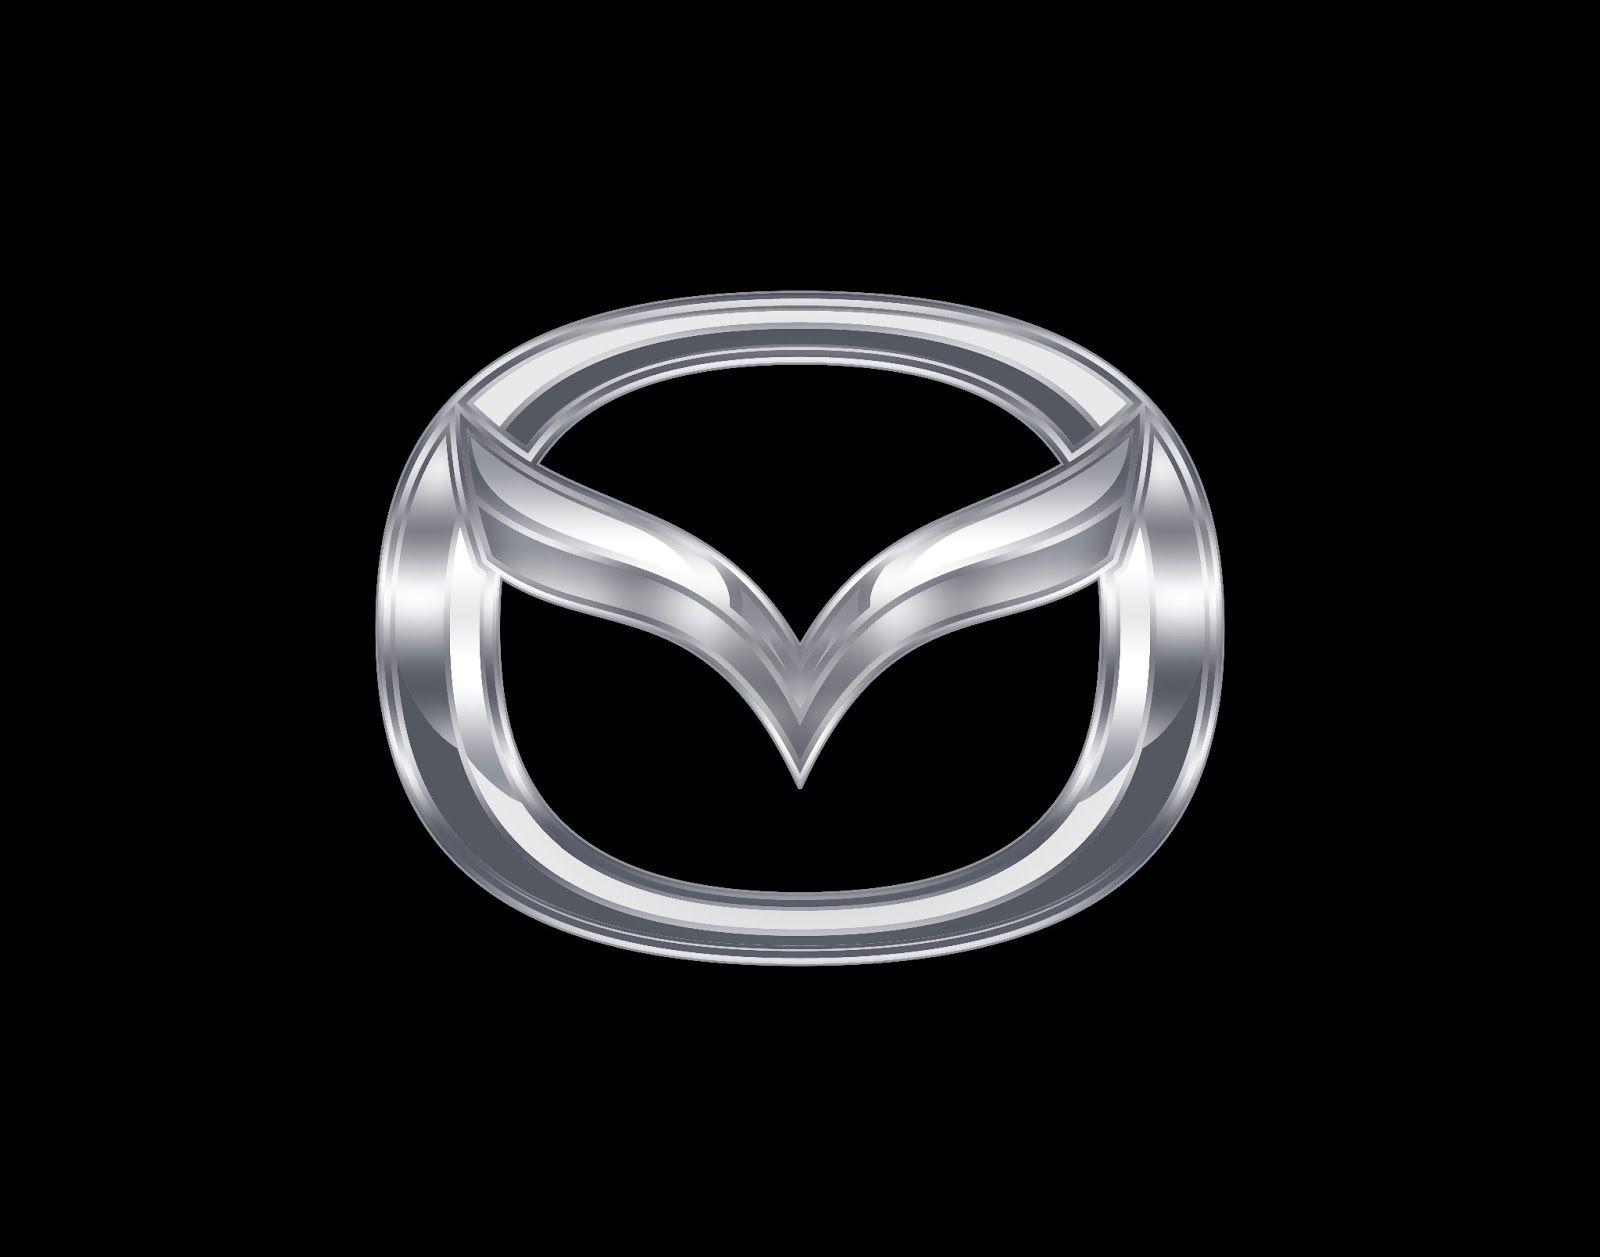 Mazda Logo Computer Wallpapers 58995 1600x1257 px ~ HDWallSource